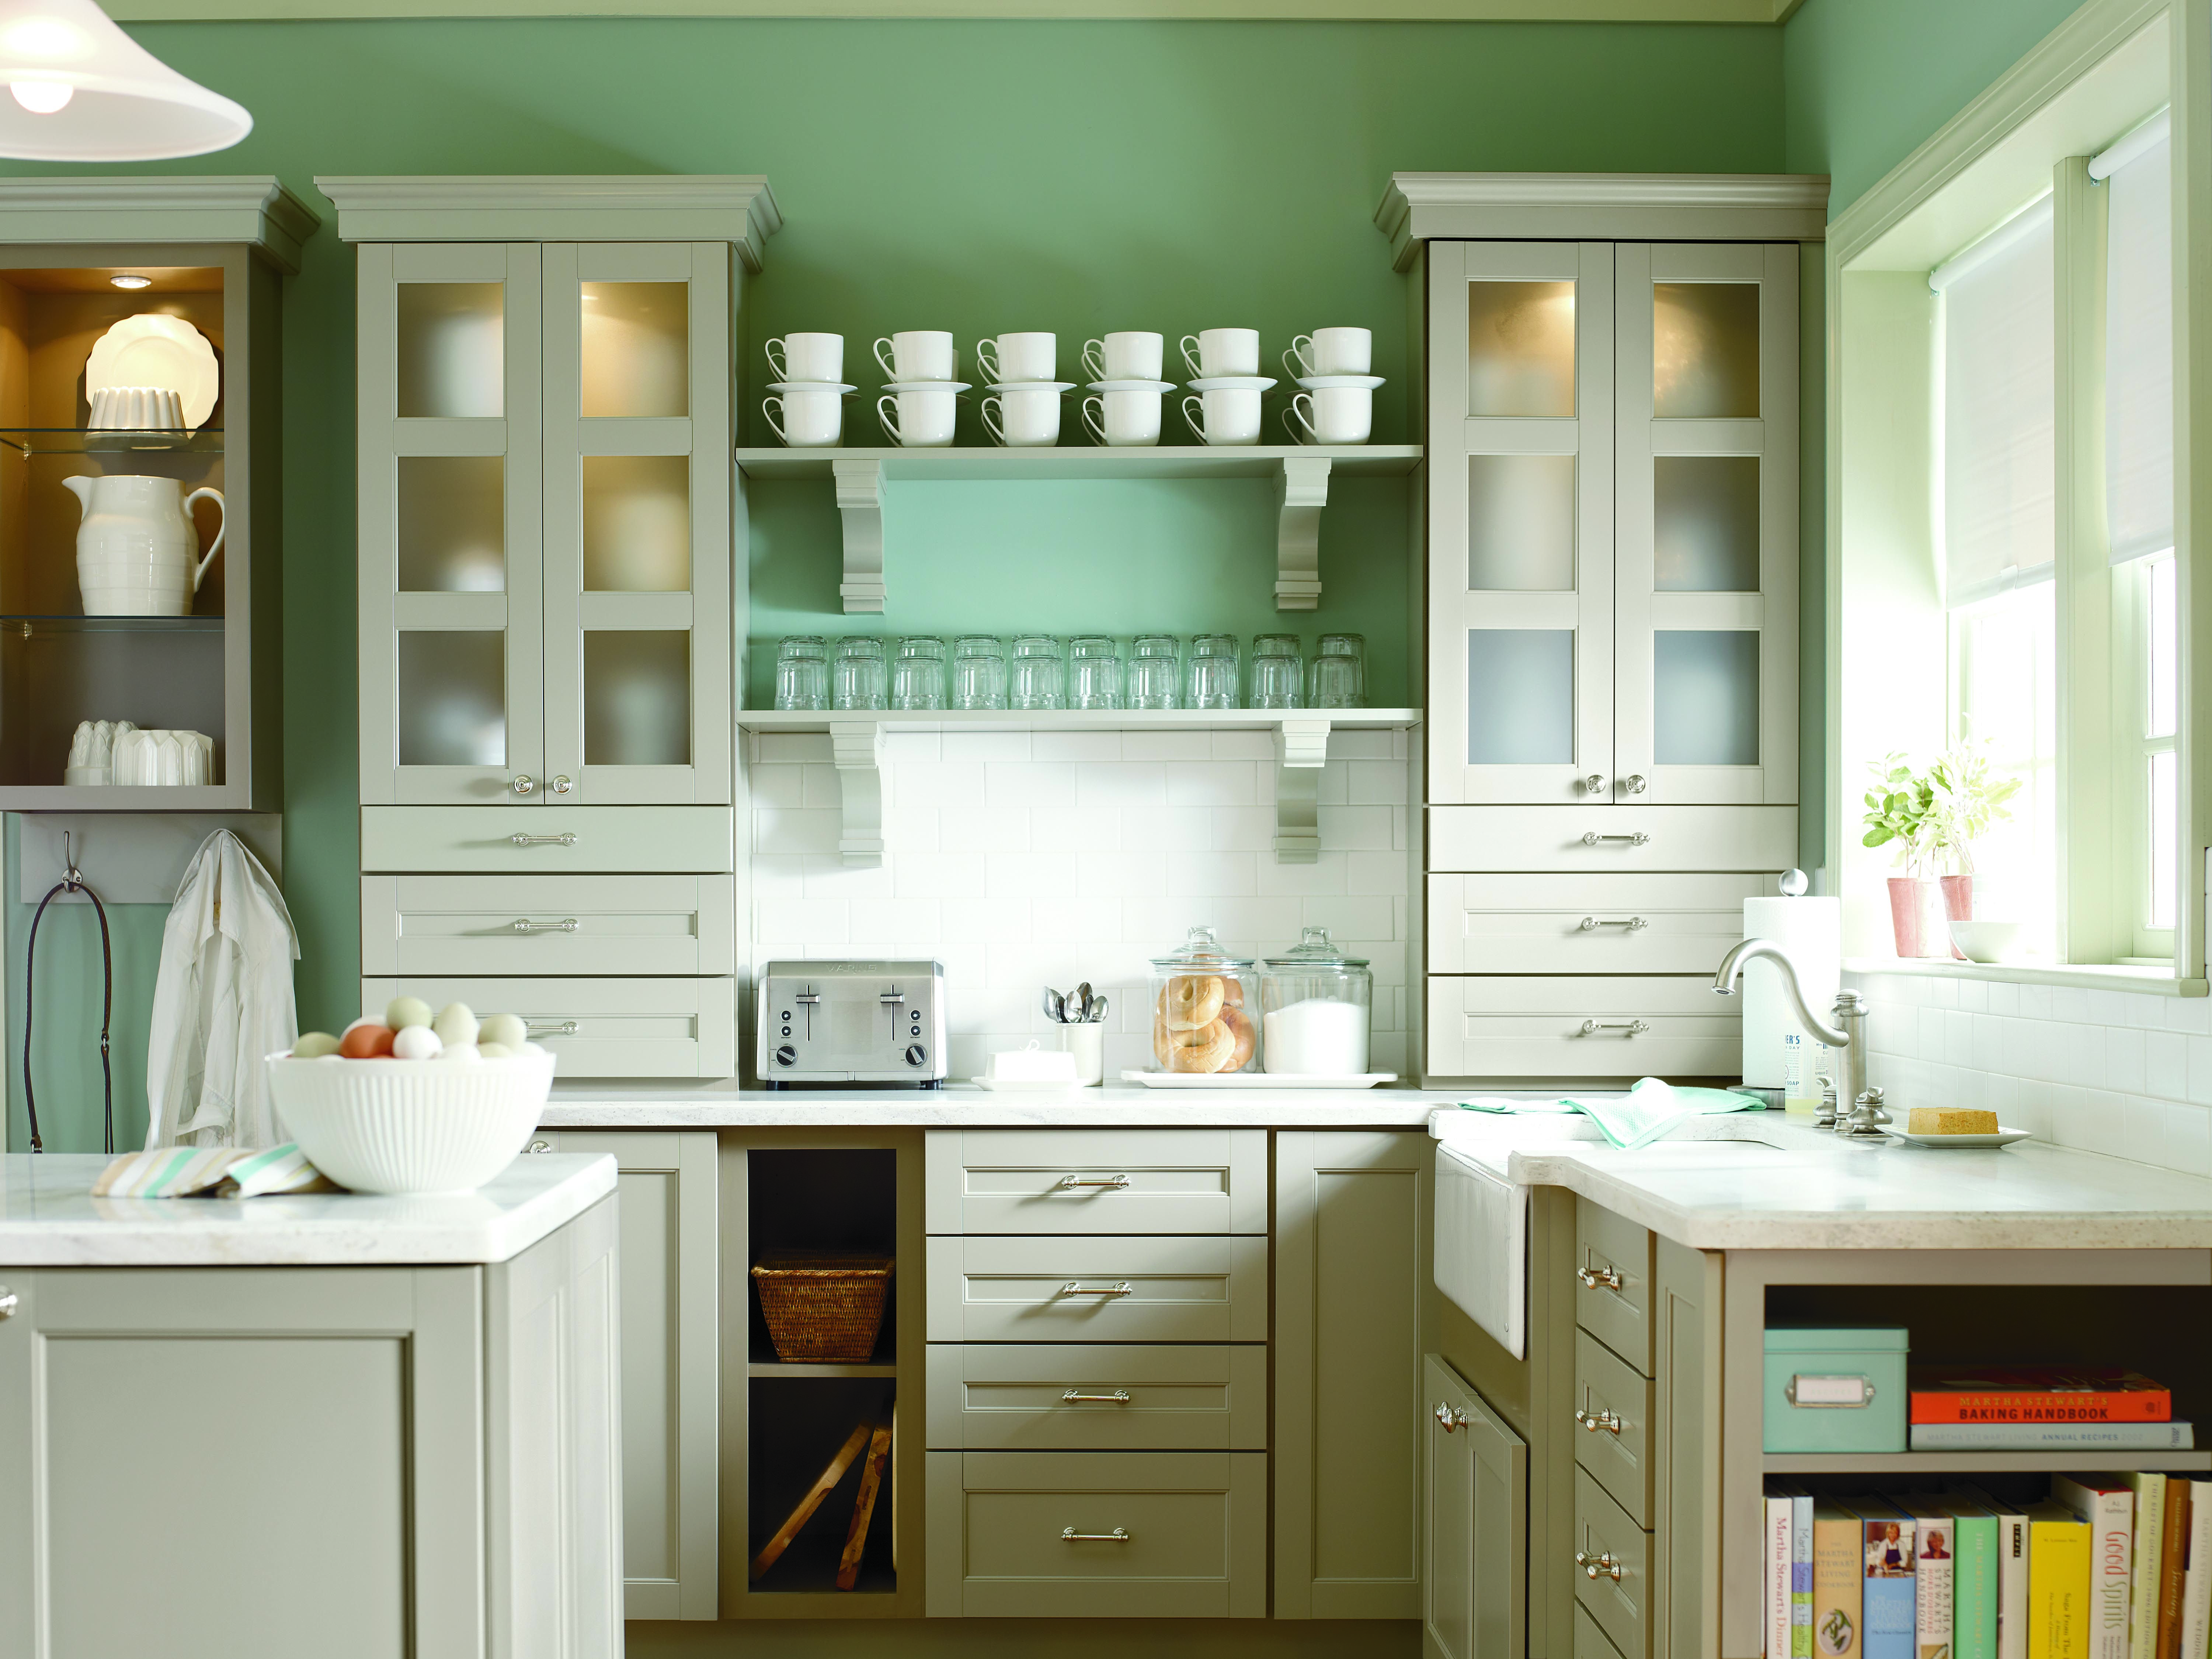 Planning your own kitchen makeover? Don't start without